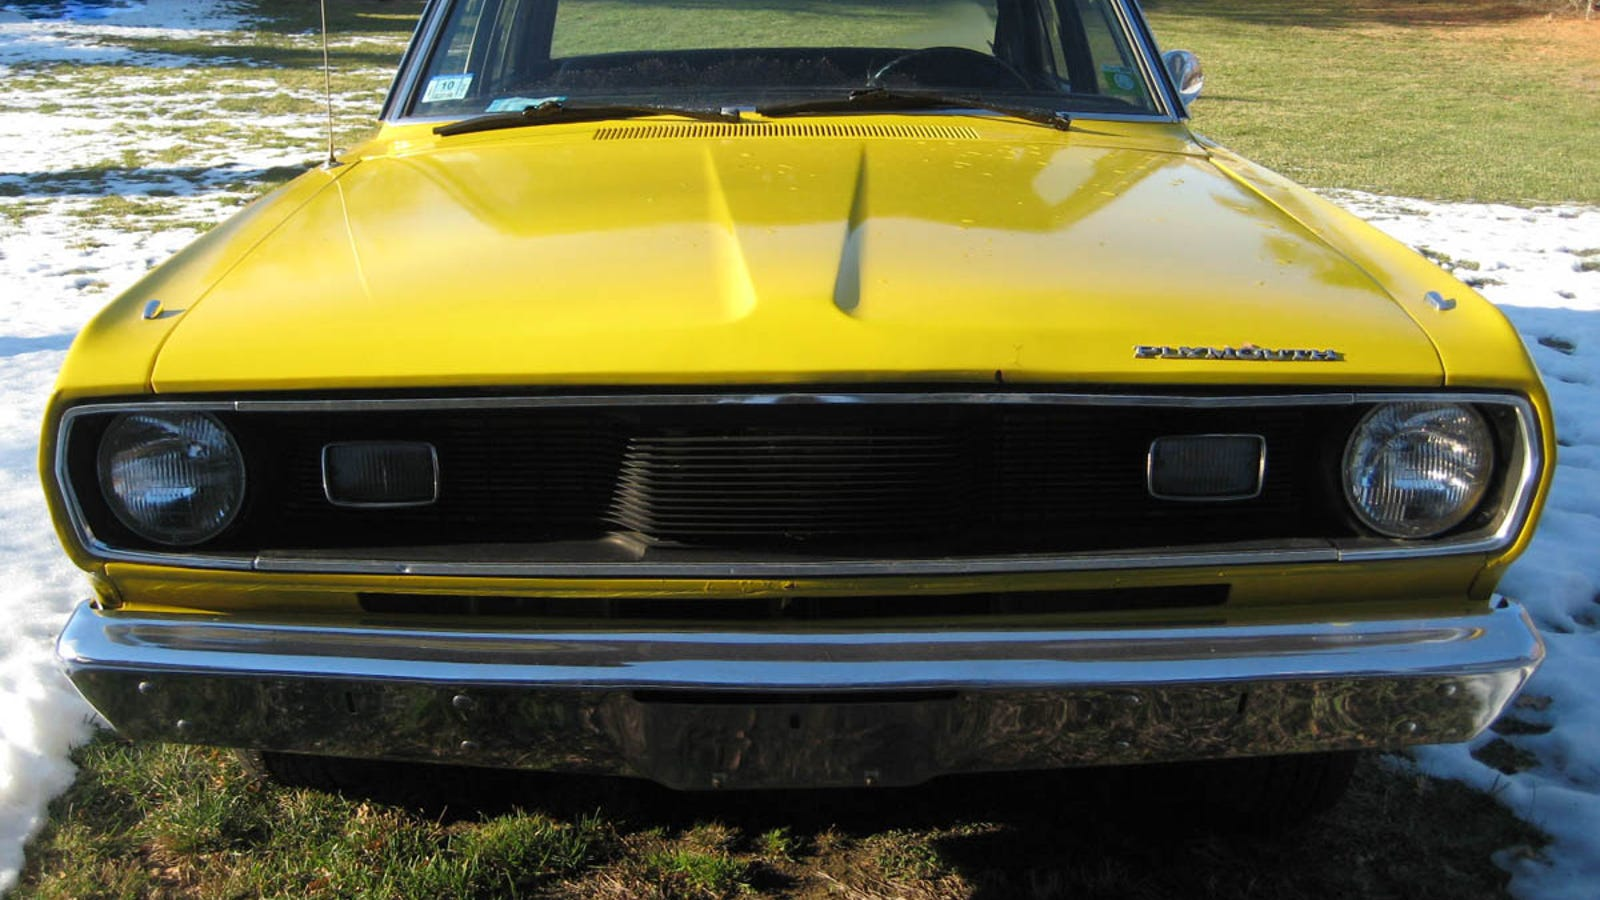 Personal Project Car Hell Edition 1972 Plymouth Valiant 1960 For Sale